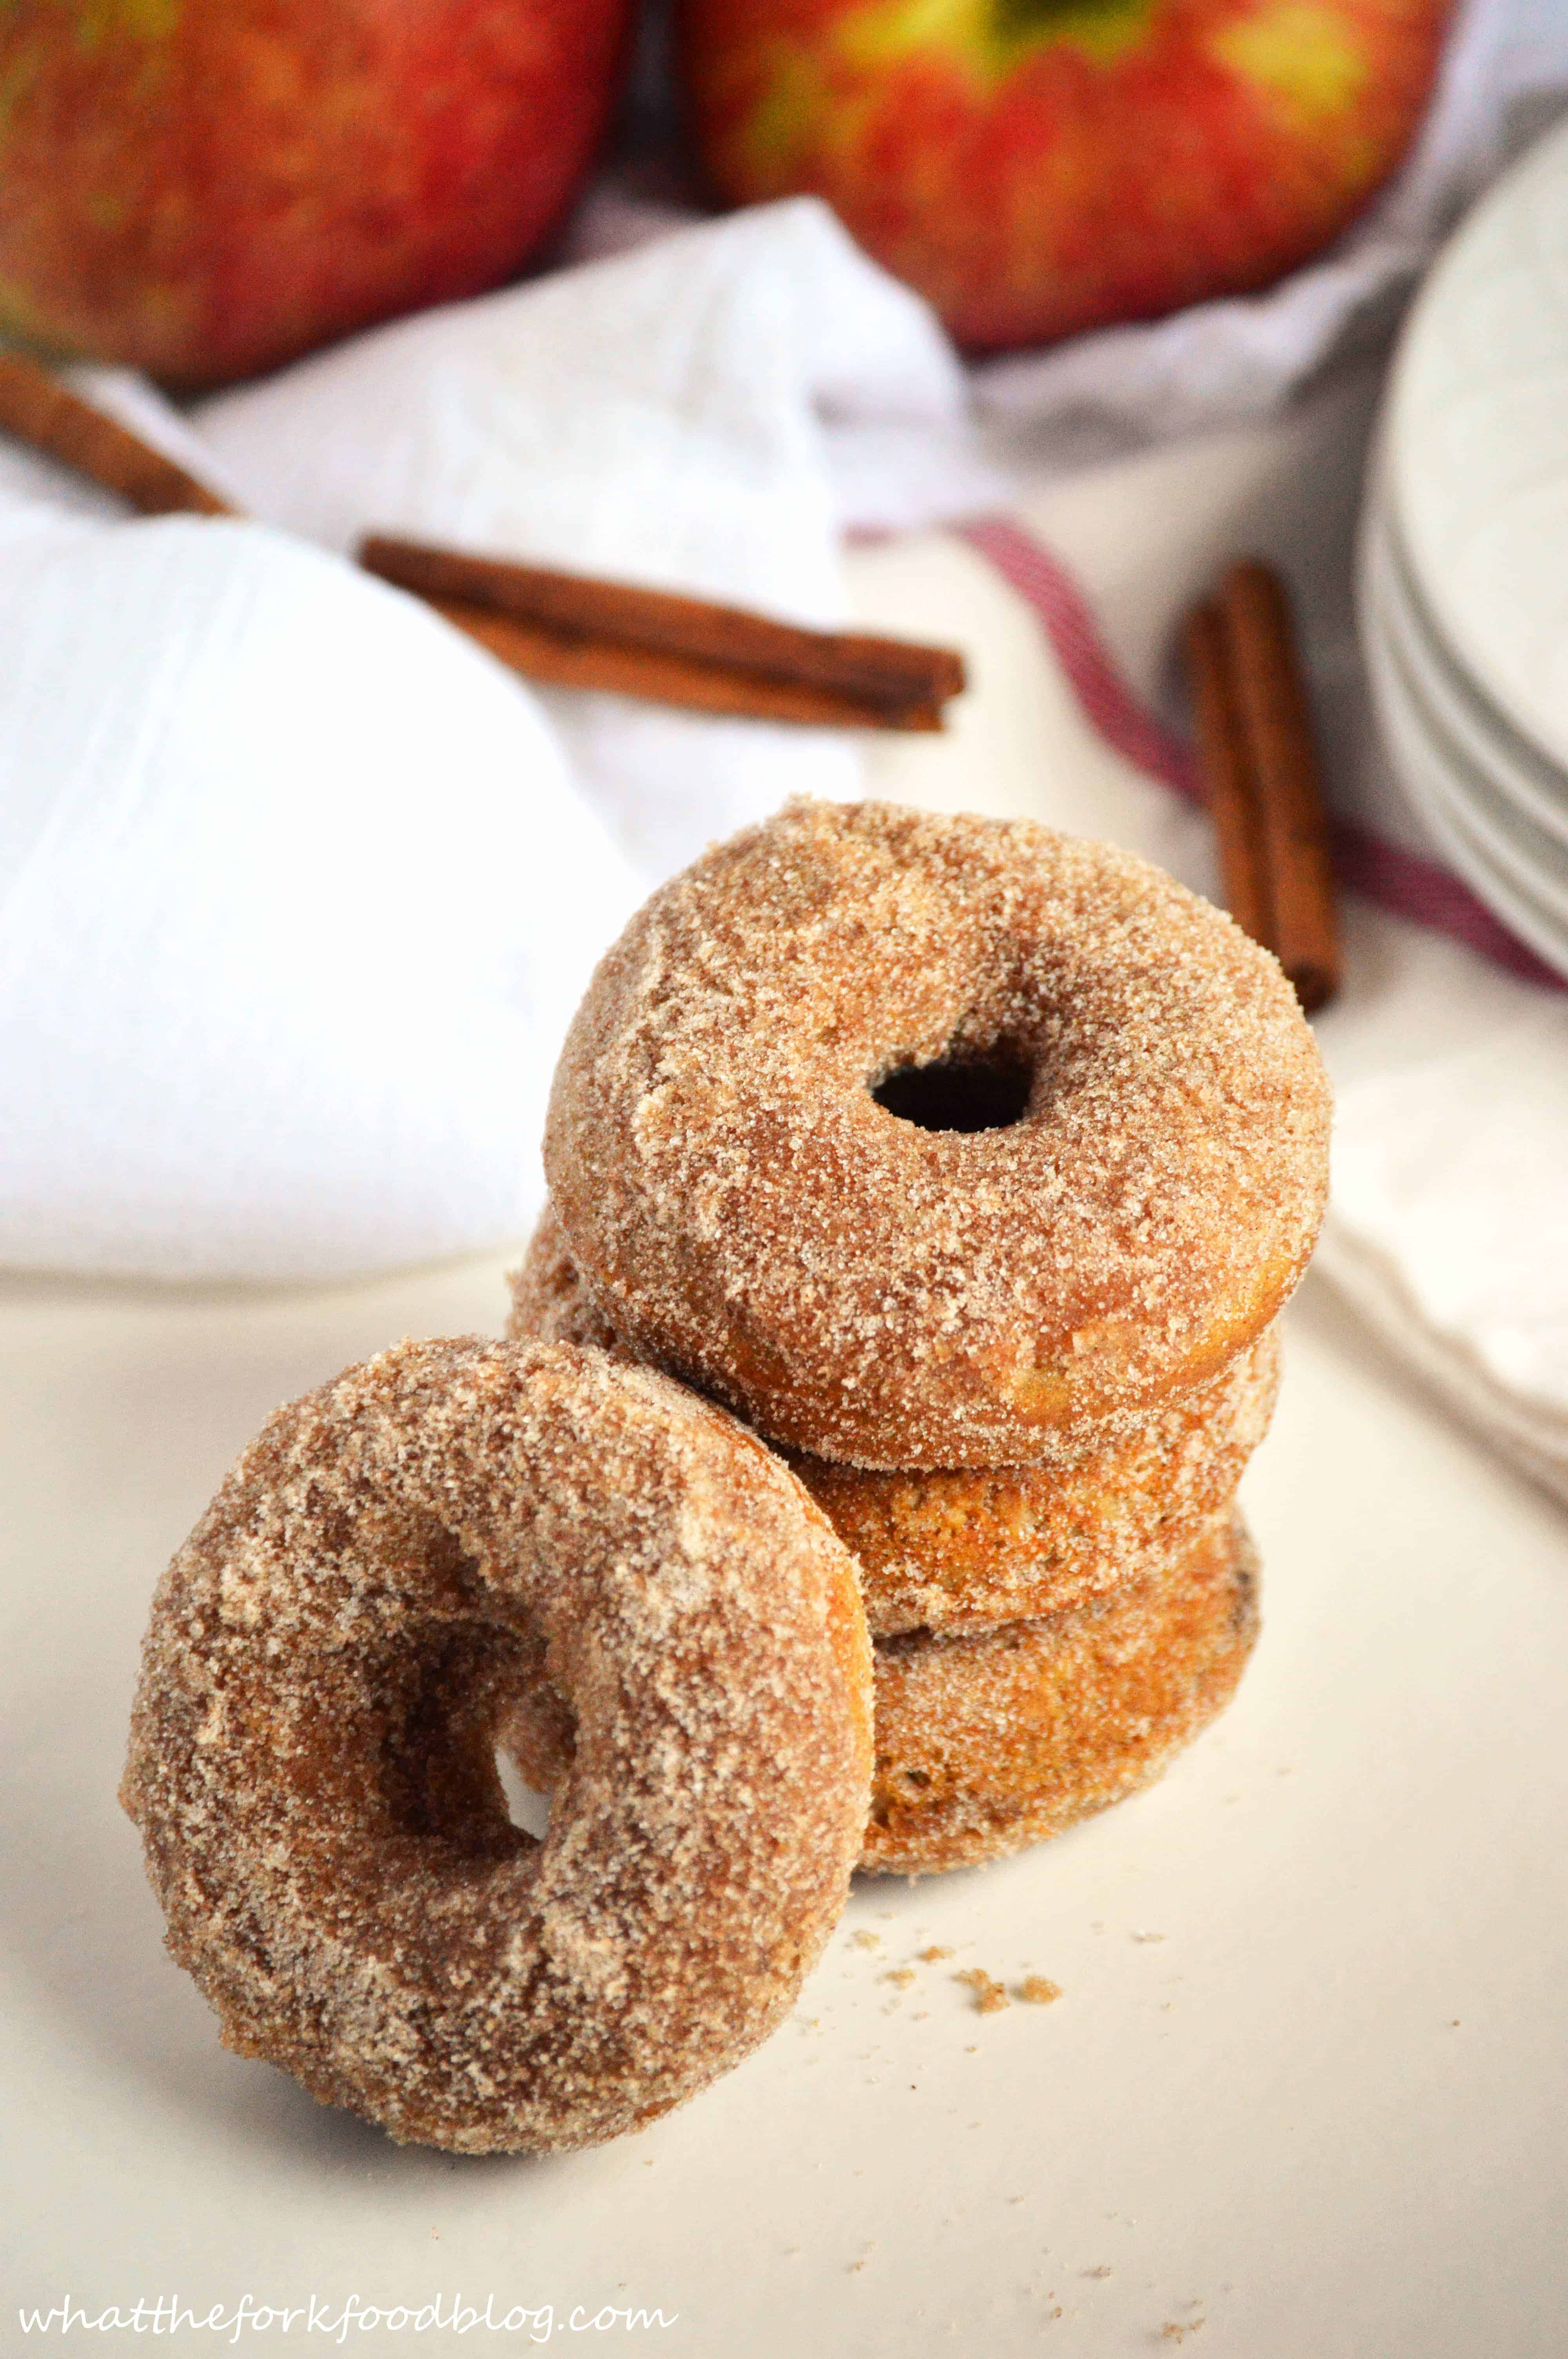 Apple Cider Donuts - What the Fork Food Blog